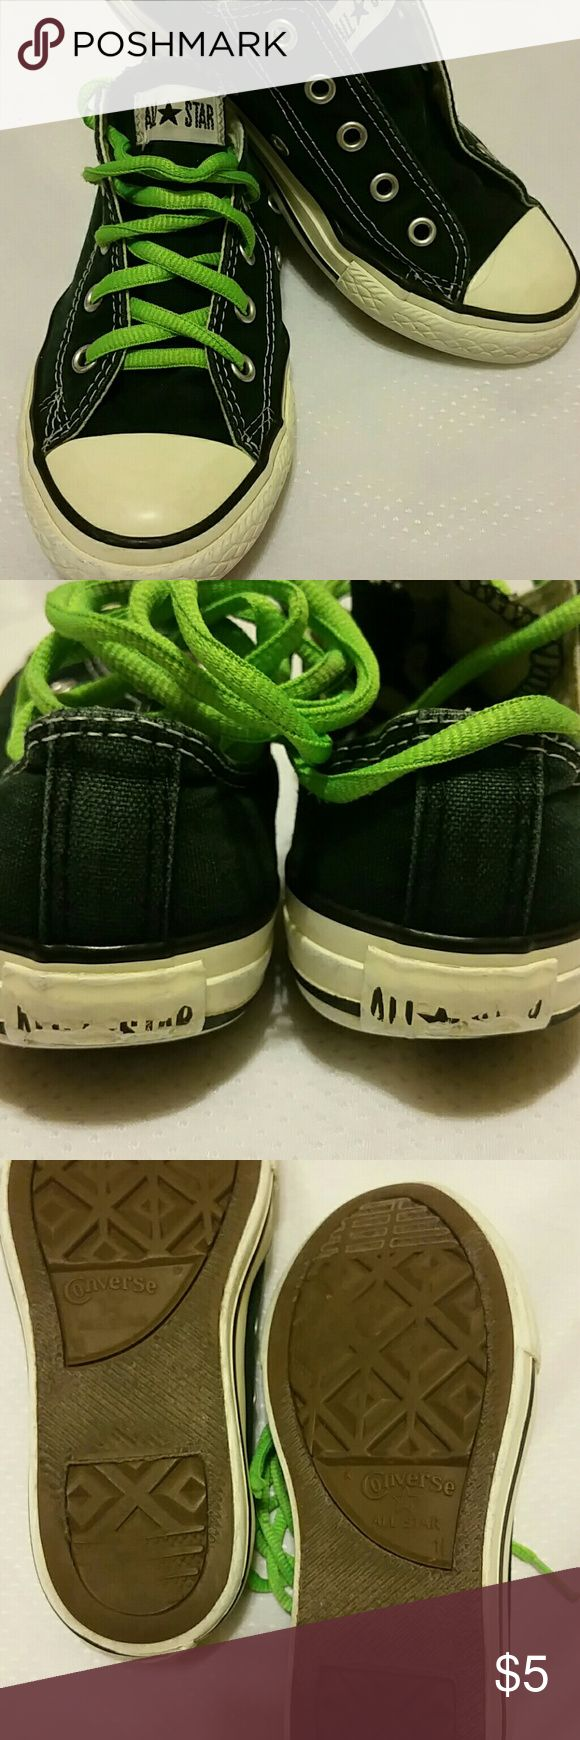 Kids Converse shoes. Used. Washed and Clean. Size 1 and a half. Shoes Sneakers